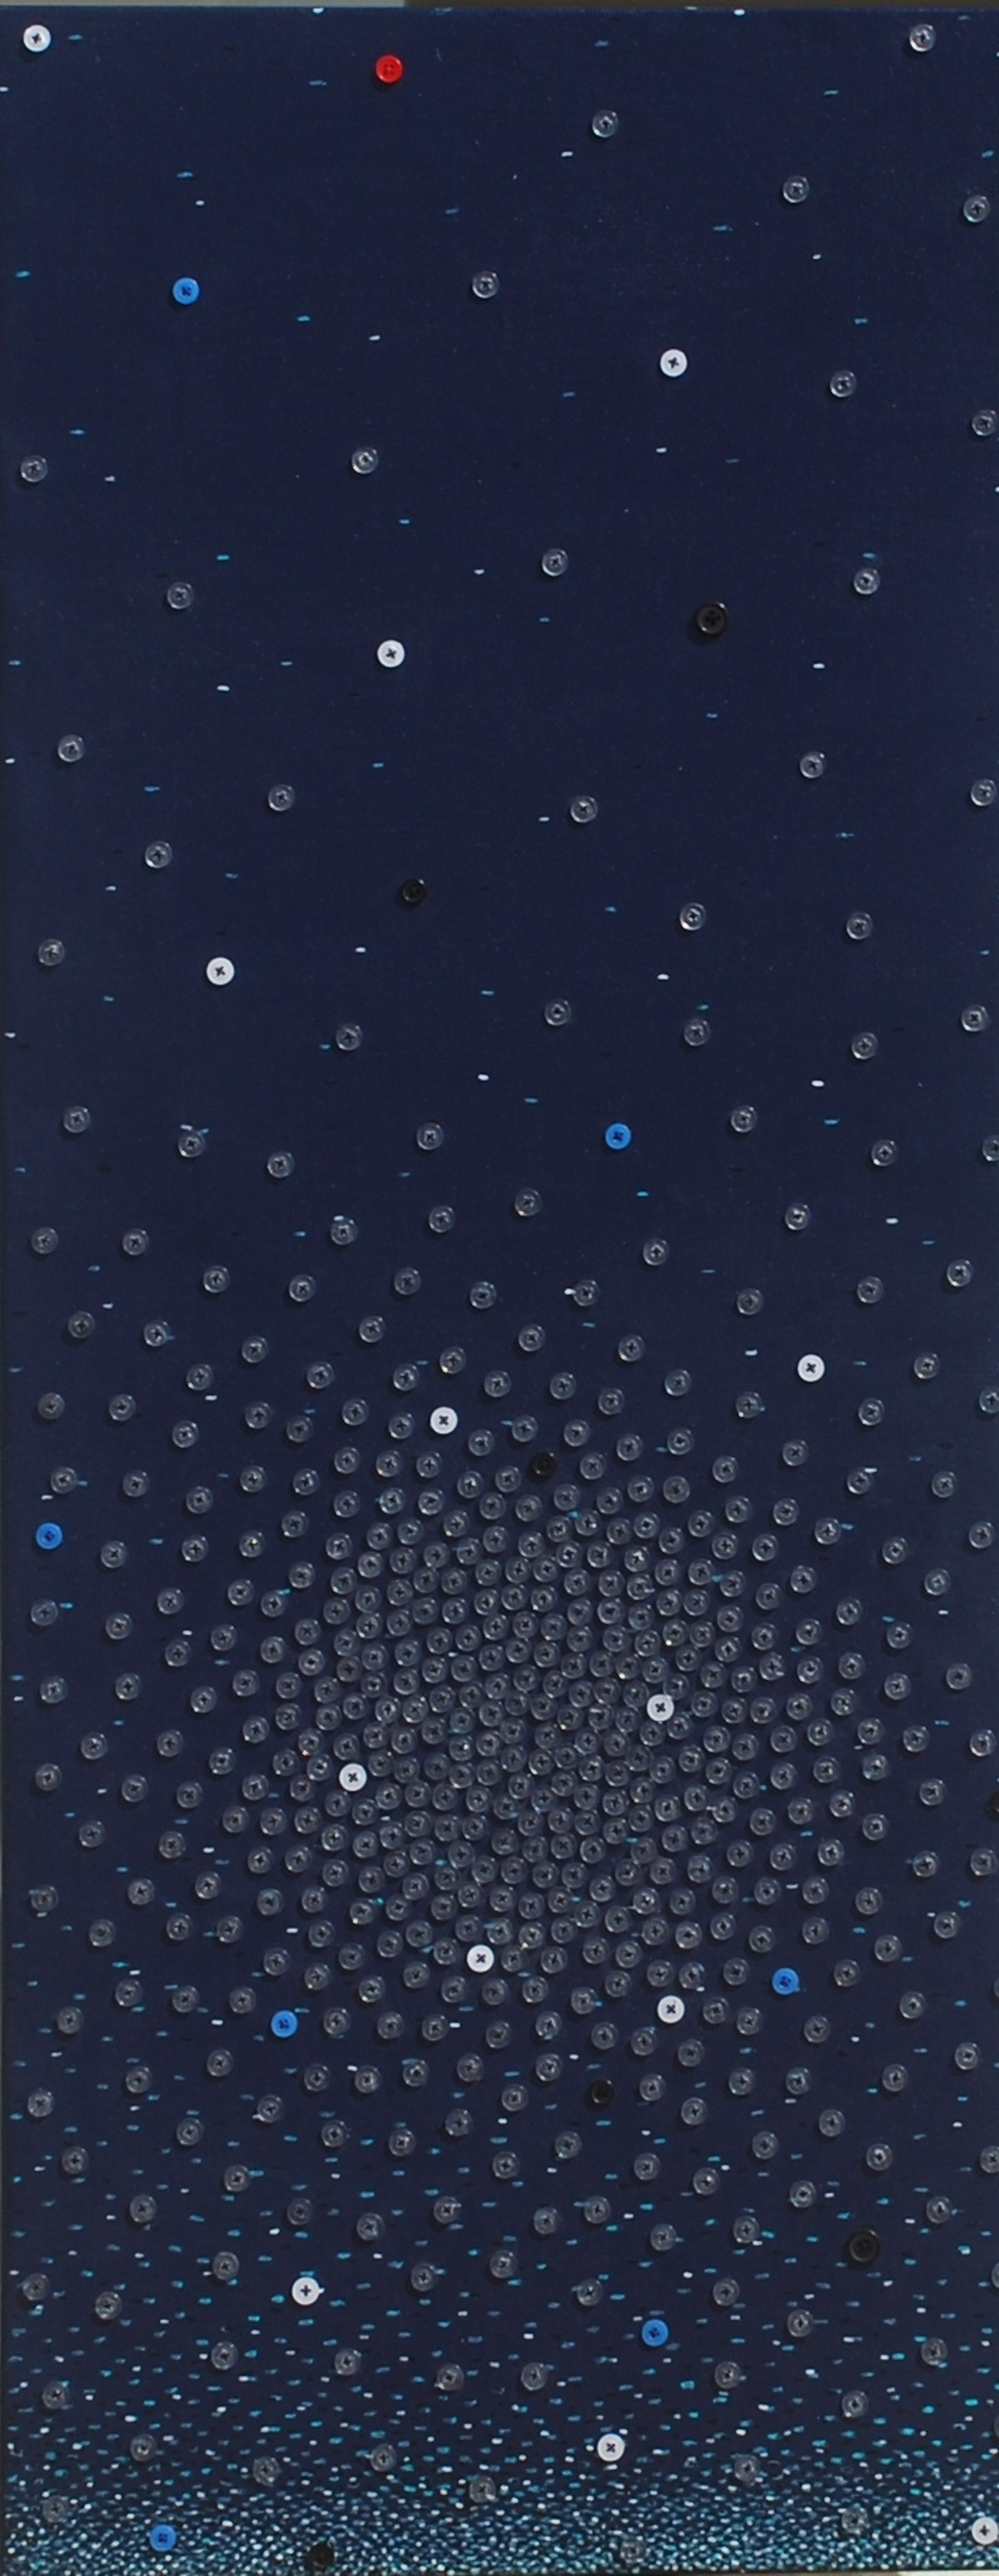 Starry night-II by Hemavathy Guha, Conceptual Painting, Mixed Media on Canvas, Blue color